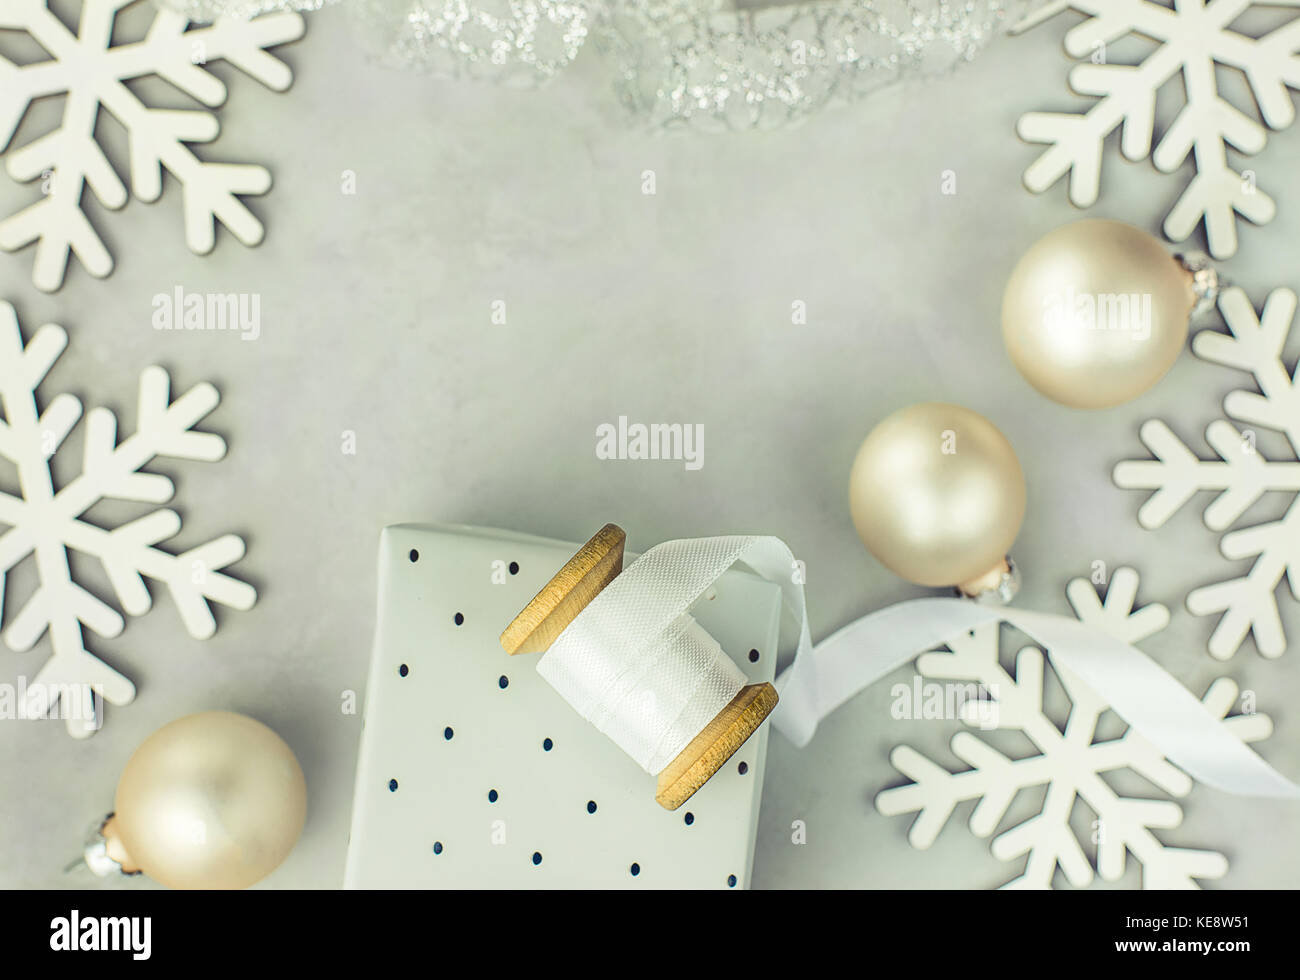 Gift boxes wrapped in silver paper. Wooden spool with white curled silk ribbon, Christmas baubles, snow flakes arranged - Stock Image